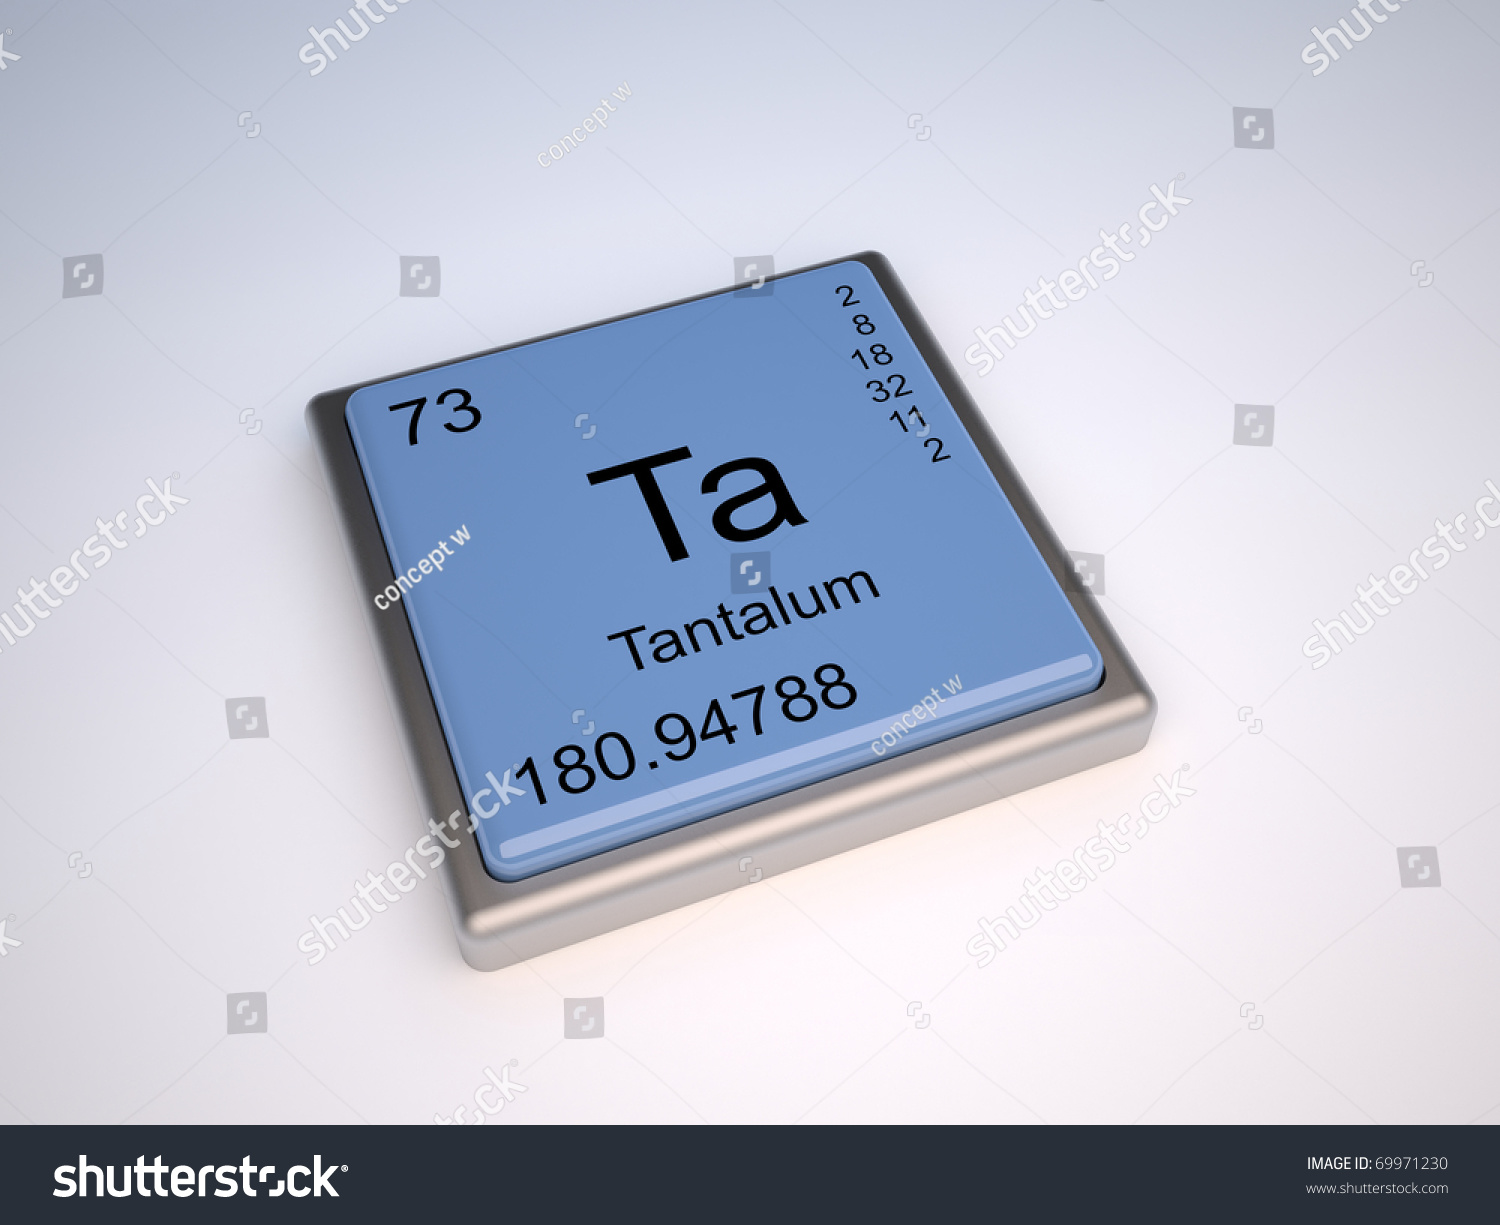 Tantalum Chemical Element Periodic Table Symbol Stock Illustration